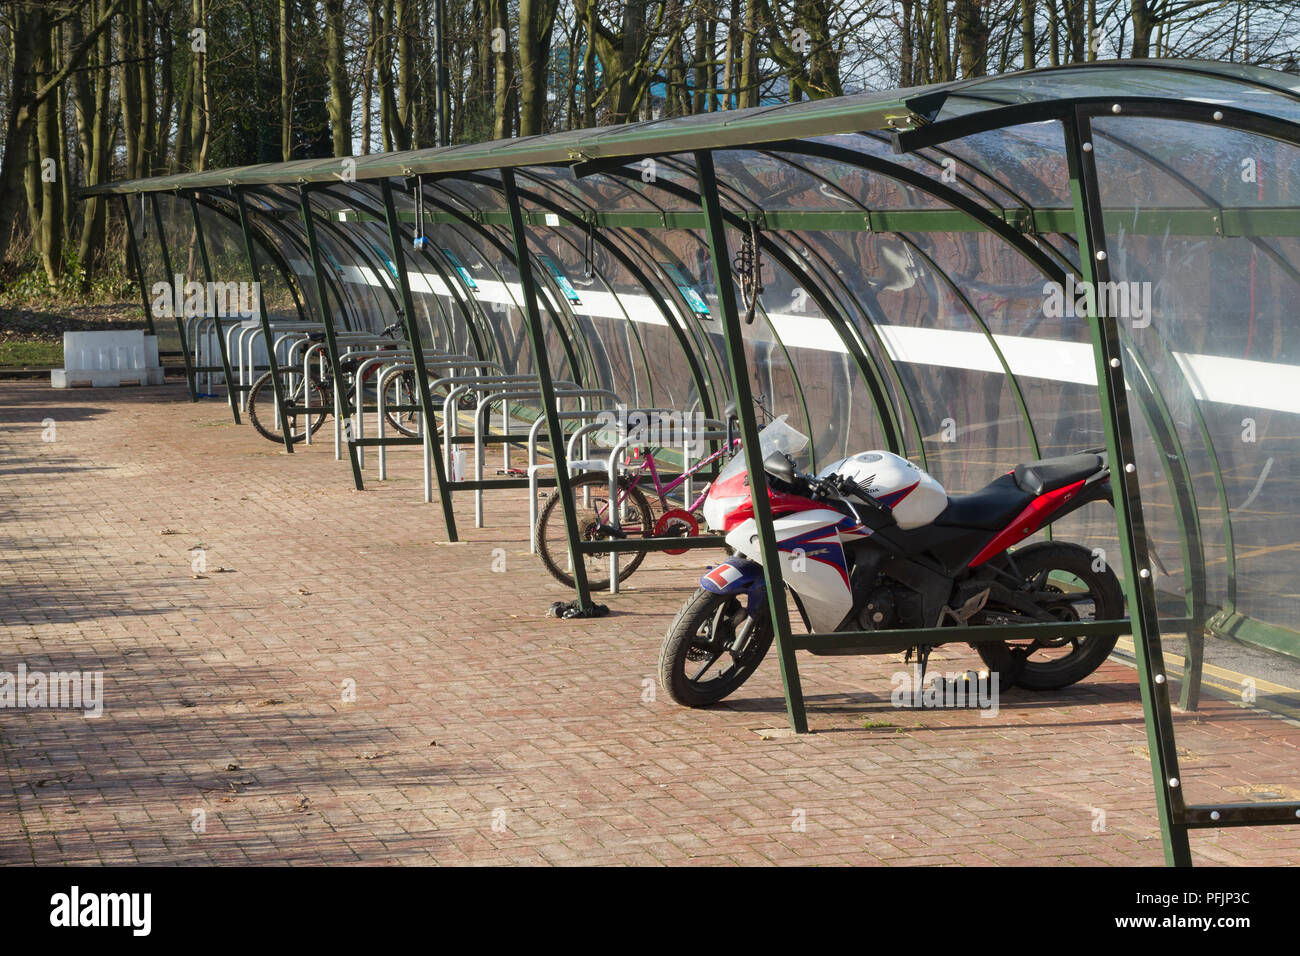 Bike shed outside intu Trafford Centre, Manchester, England. - Stock Image